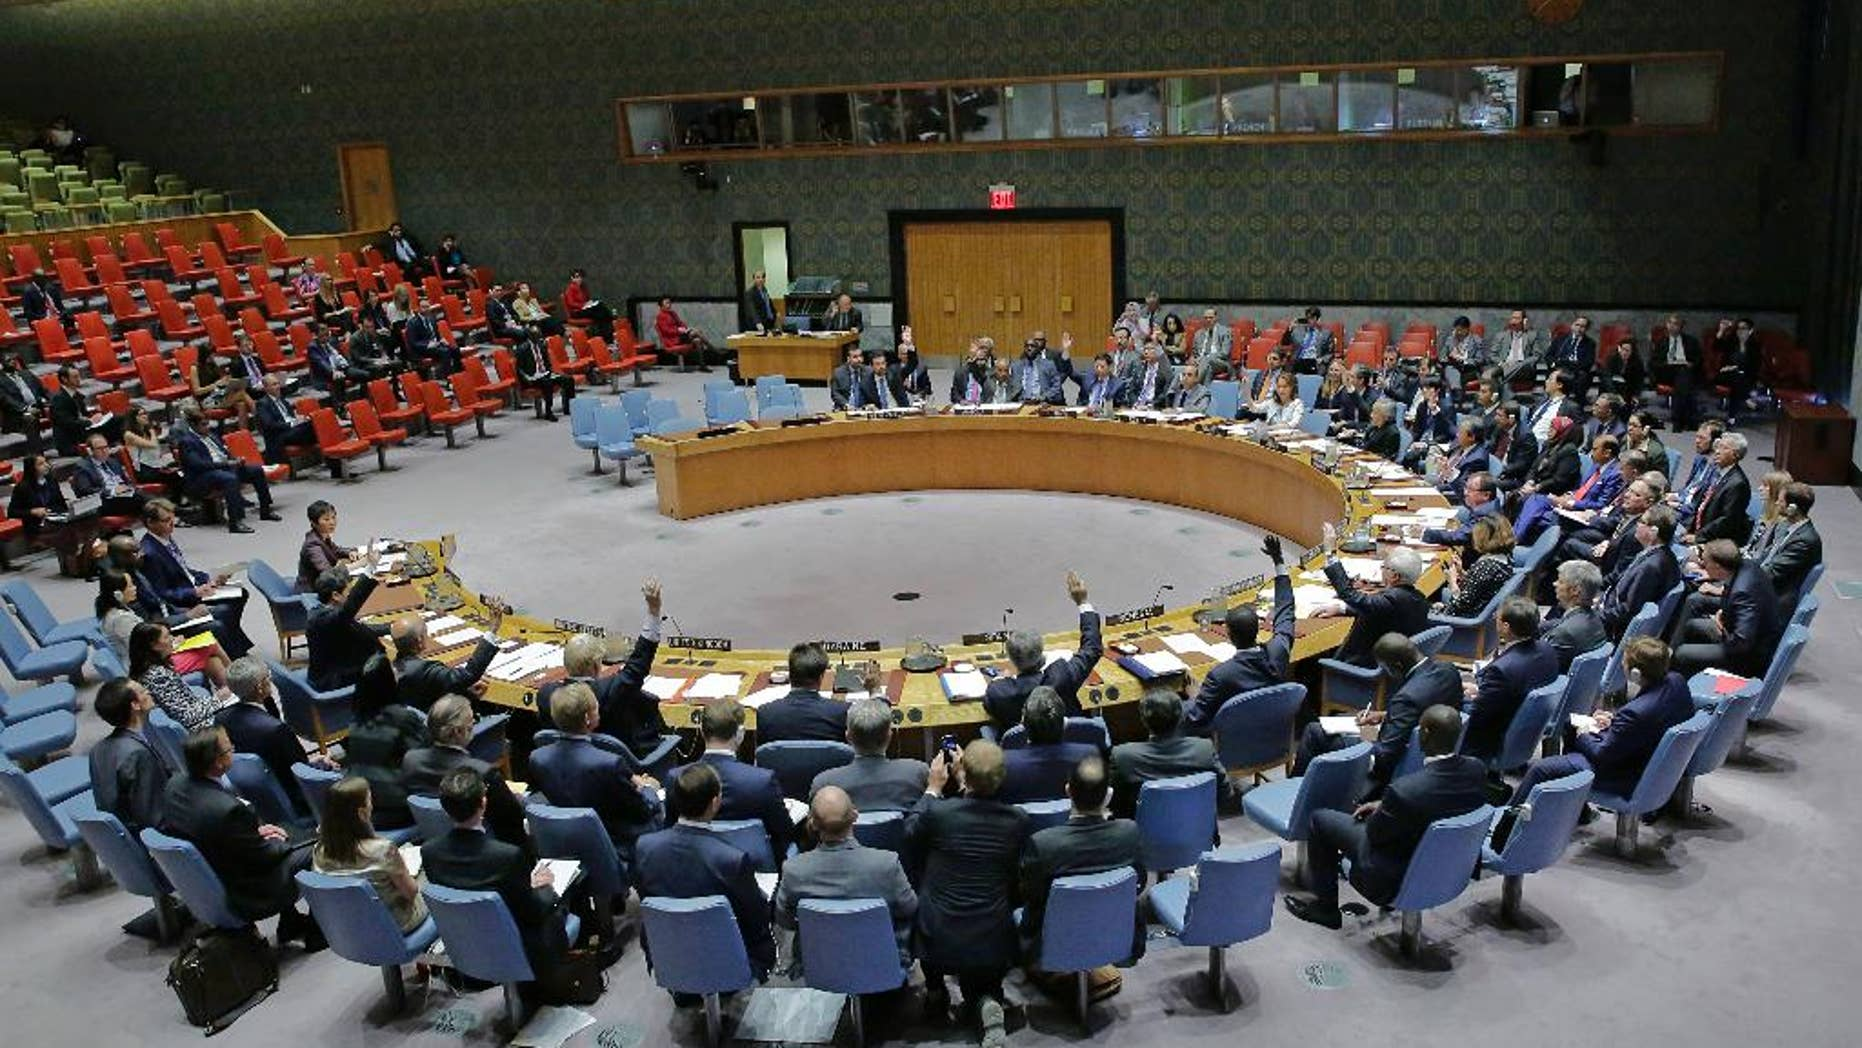 "In this photo provided by the United Nations, the U.N. Security Council unanimously adopts a resolution on aviation security and safety, Thursday, Sept. 22, 2016 at United Nations headquarters. The U.N.'s most powerful body called for stepped up screening and security checks at airports worldwide to ""detect and deter terrorist attacks."" And it called on all countries to tighten security at airport buildings, share information about possible threats, and provide advance passenger lists so governments are aware of their transit or attempted entry. (Evan Schneider/The United Nations via AP)"